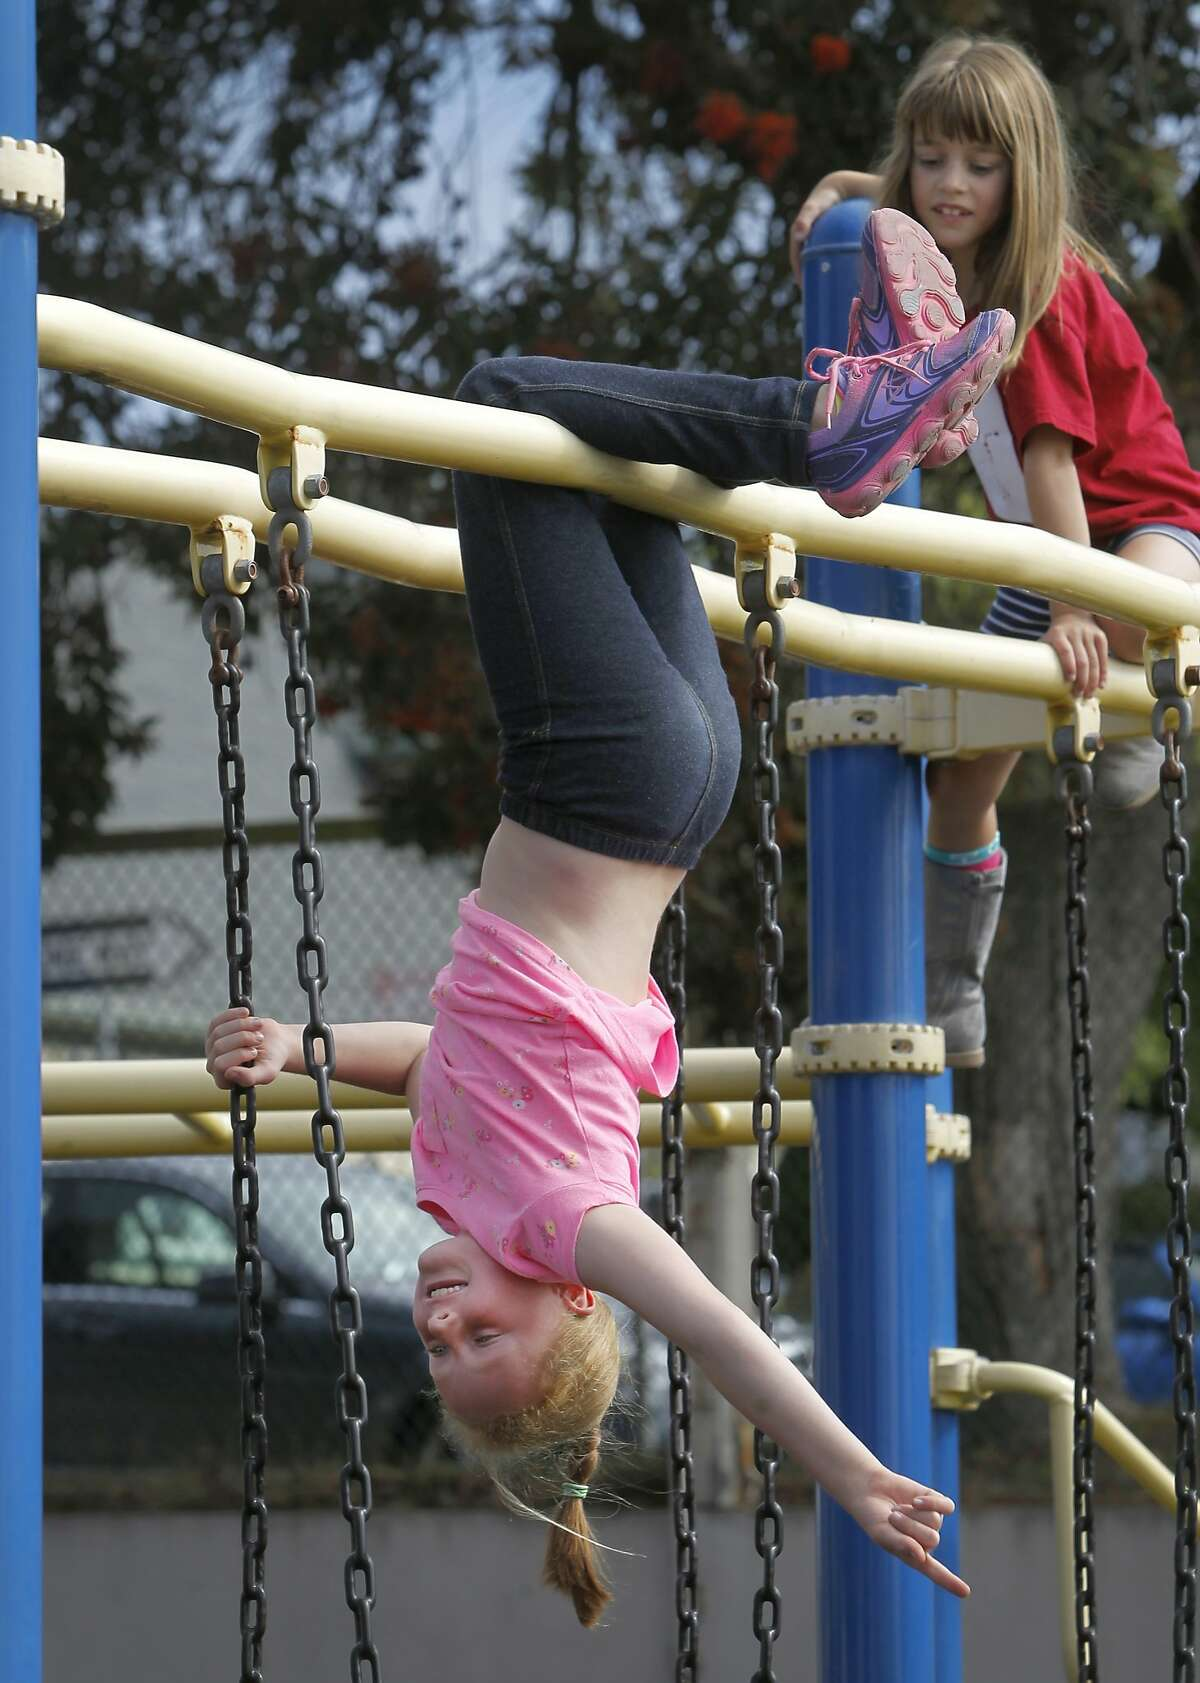 Second-grader Lilah Callahan hangs out with her friend Grace Wofsy (right) on a play structure at Commodore Sloat Elementary School in San Francisco, Calif. on Saturday, Oct. 3, 2015. The playground at the school joins a list of others citywide that will be open on weekends as part of the Shared Schoolyard project.